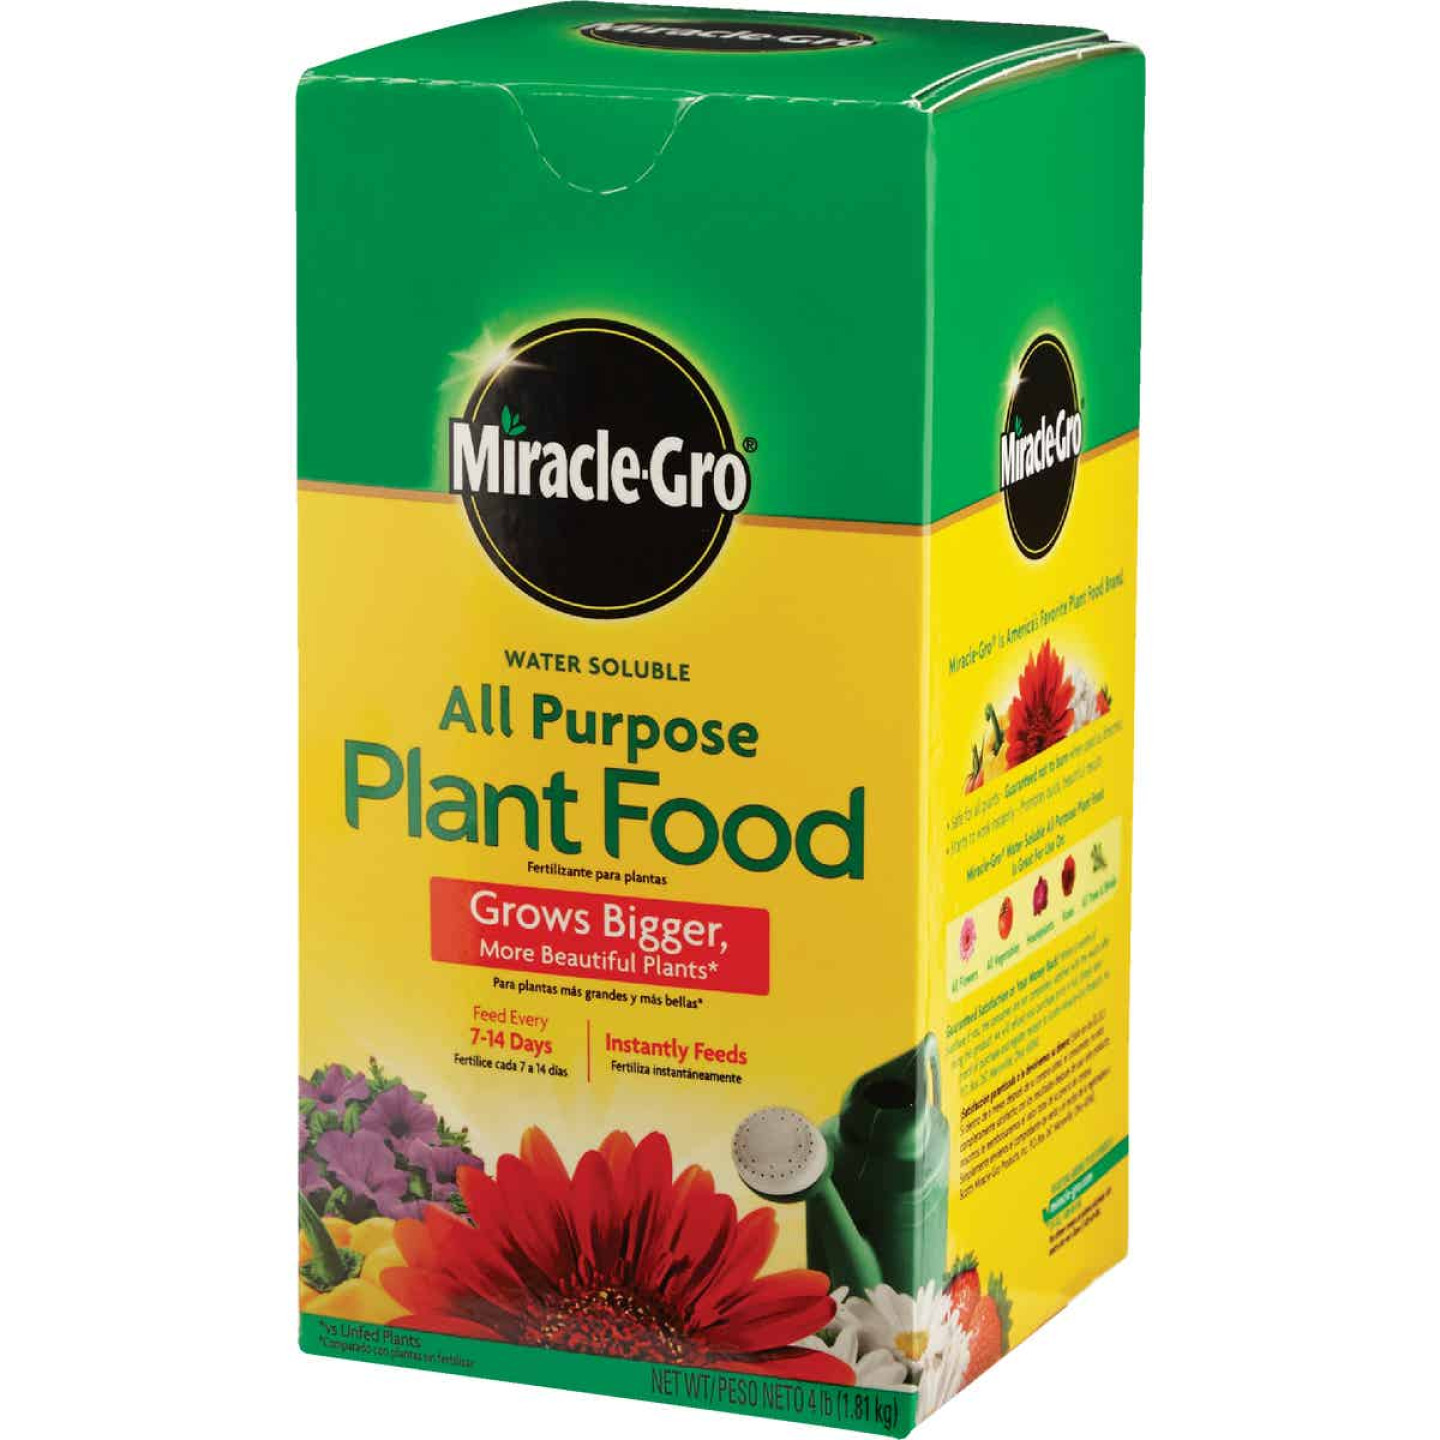 Miracle-Gro 4 Lb. 24-8-16 All Purpose Dry Plant Food Image 3